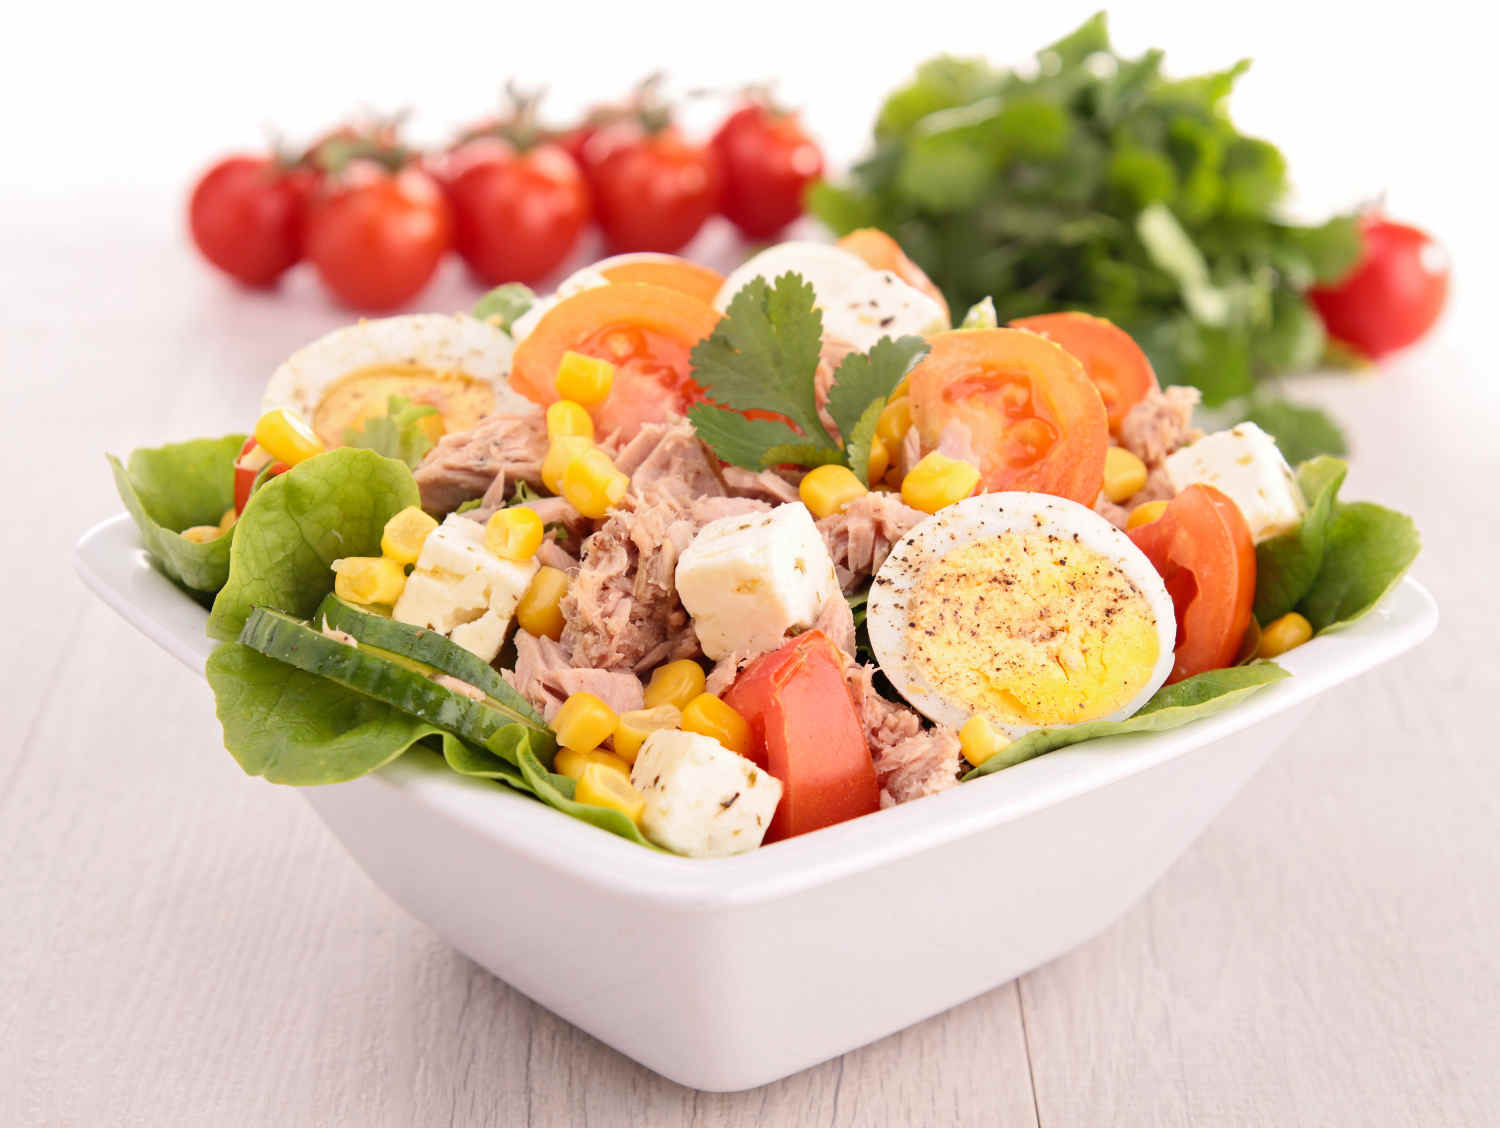 Bodytrim-Egg-Tuna-Corn-Salad-Weight-loss-Recipe-Image